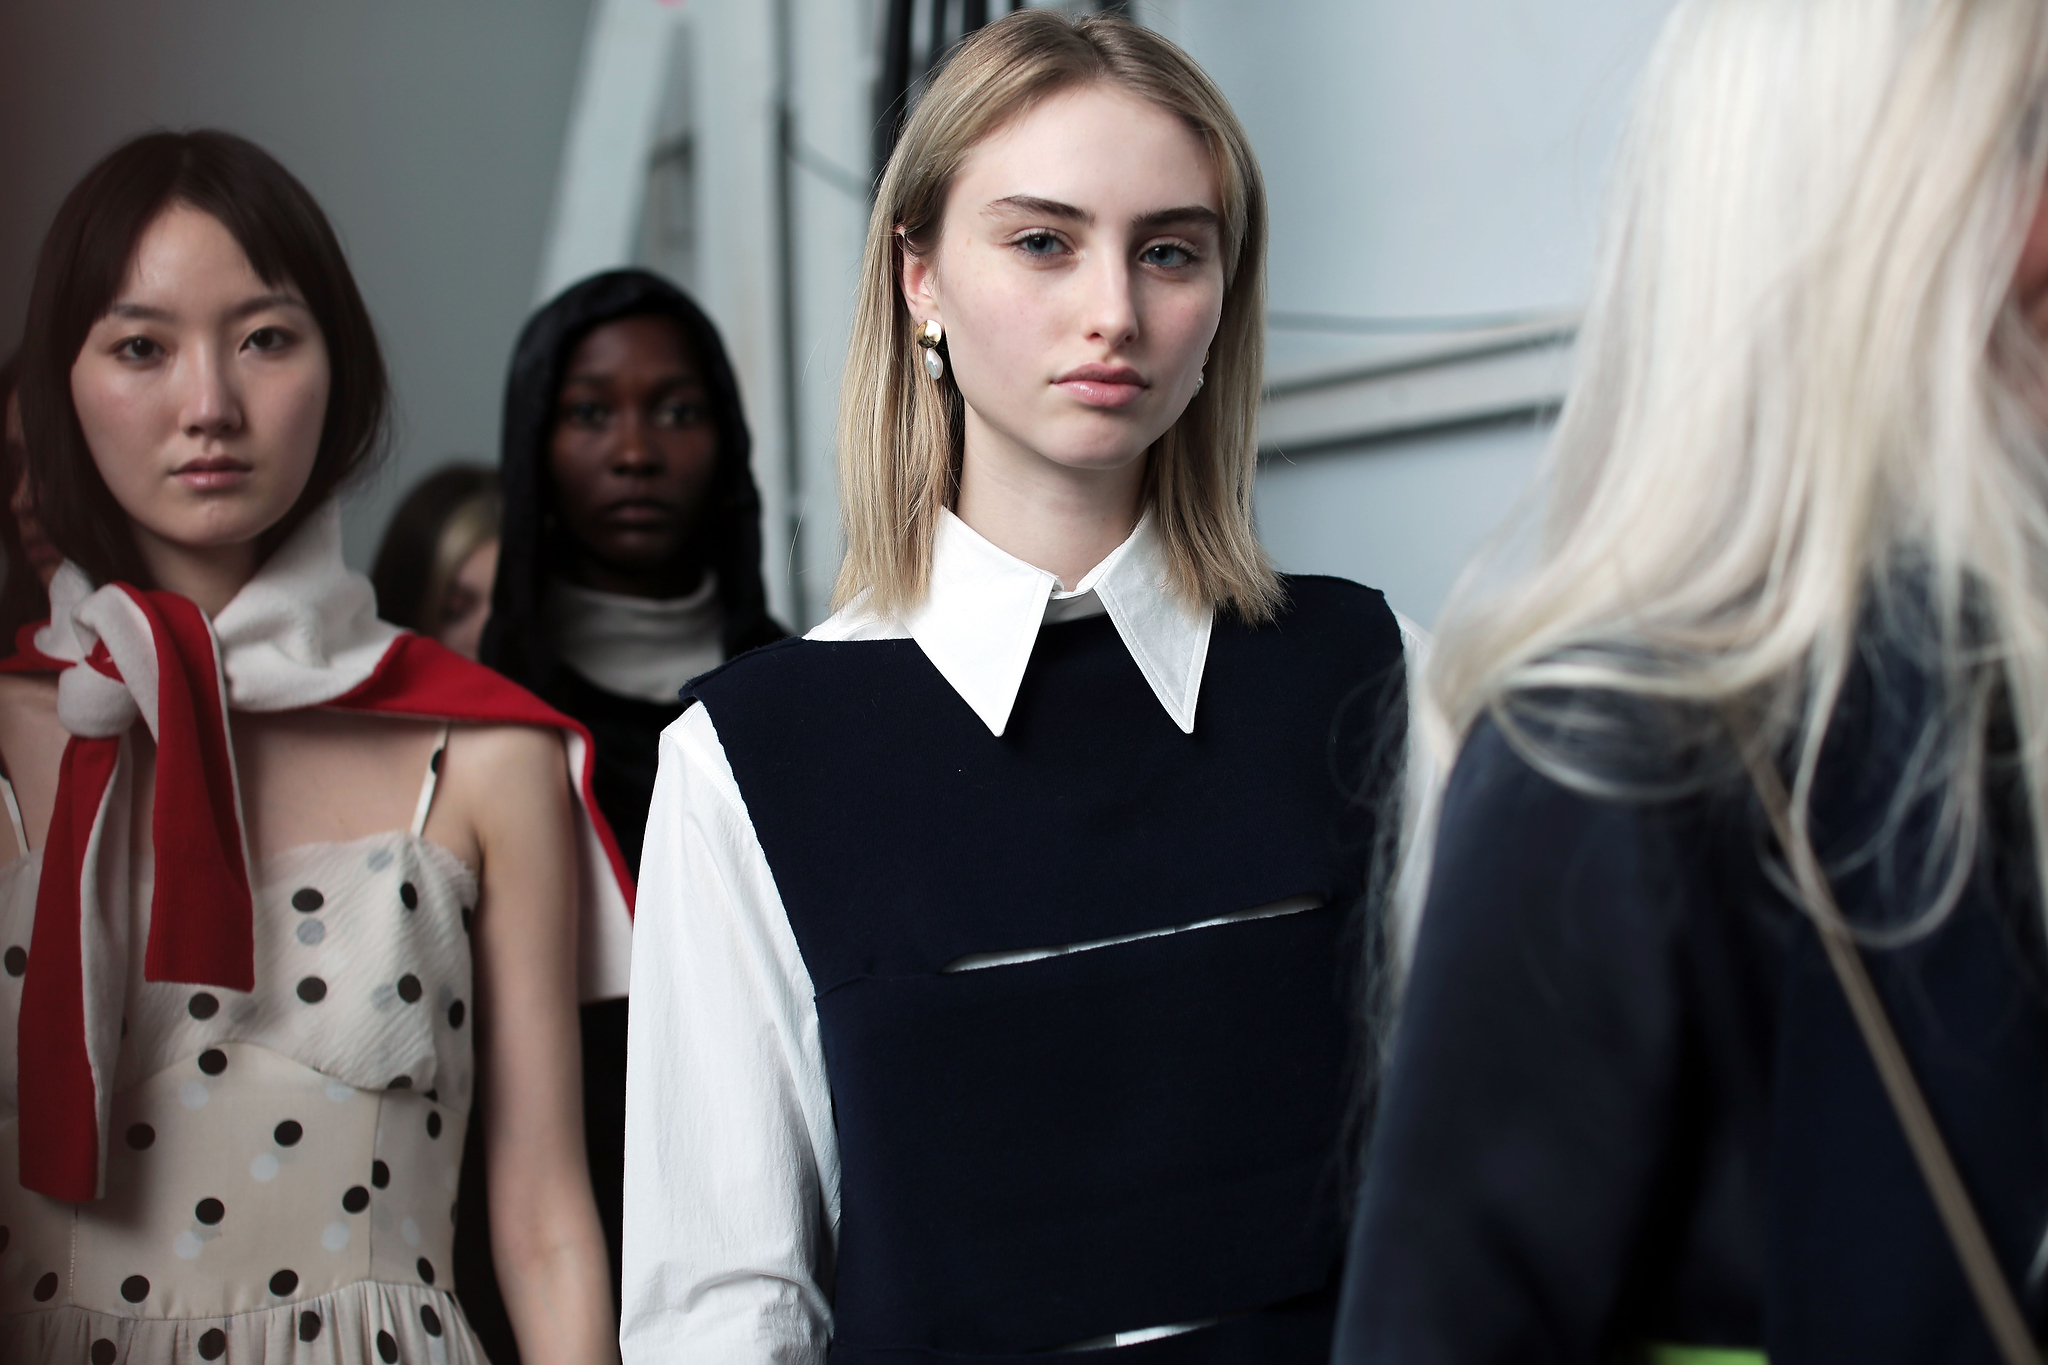 Backstage at Creatures of Comfort RTW Fall 2018